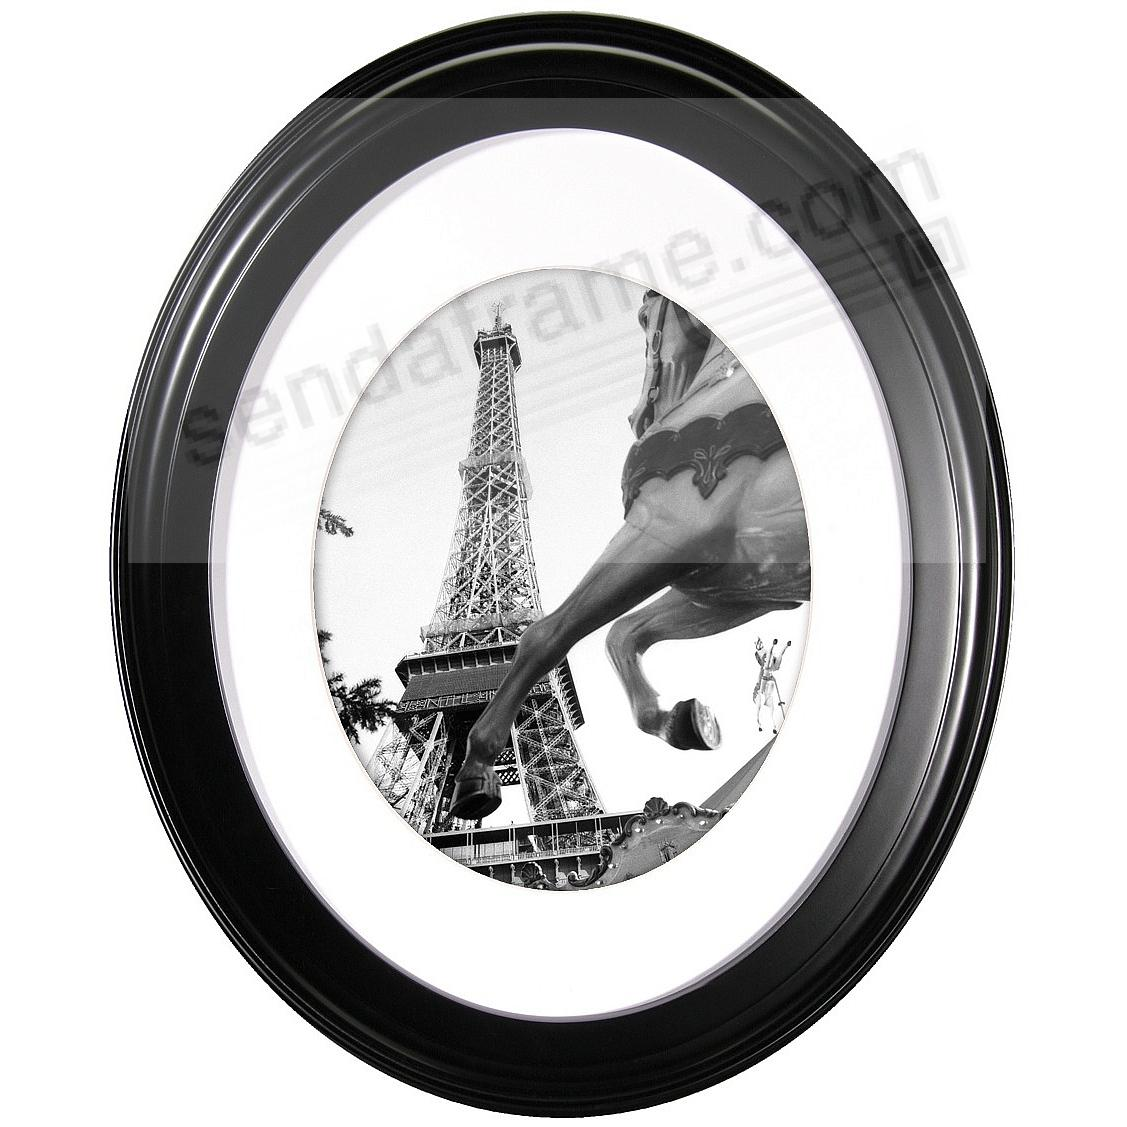 Black OVAL PORTRAIT frame 11x14/8x10 by MCS®